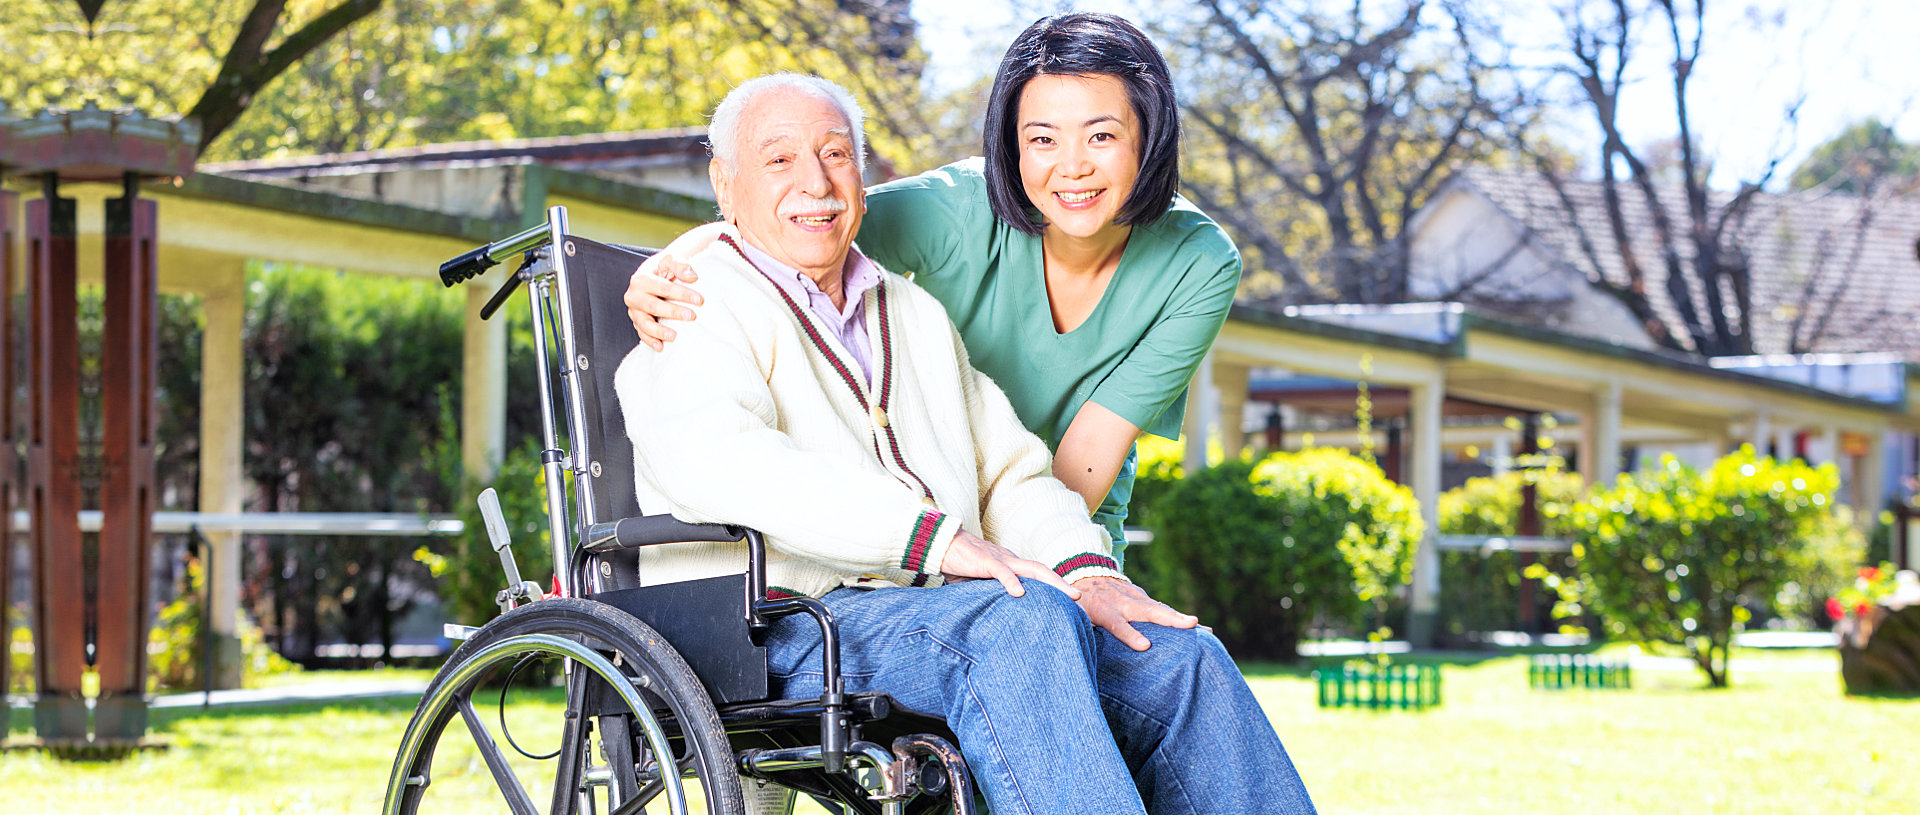 caregiver with her senior patient in wheelchair